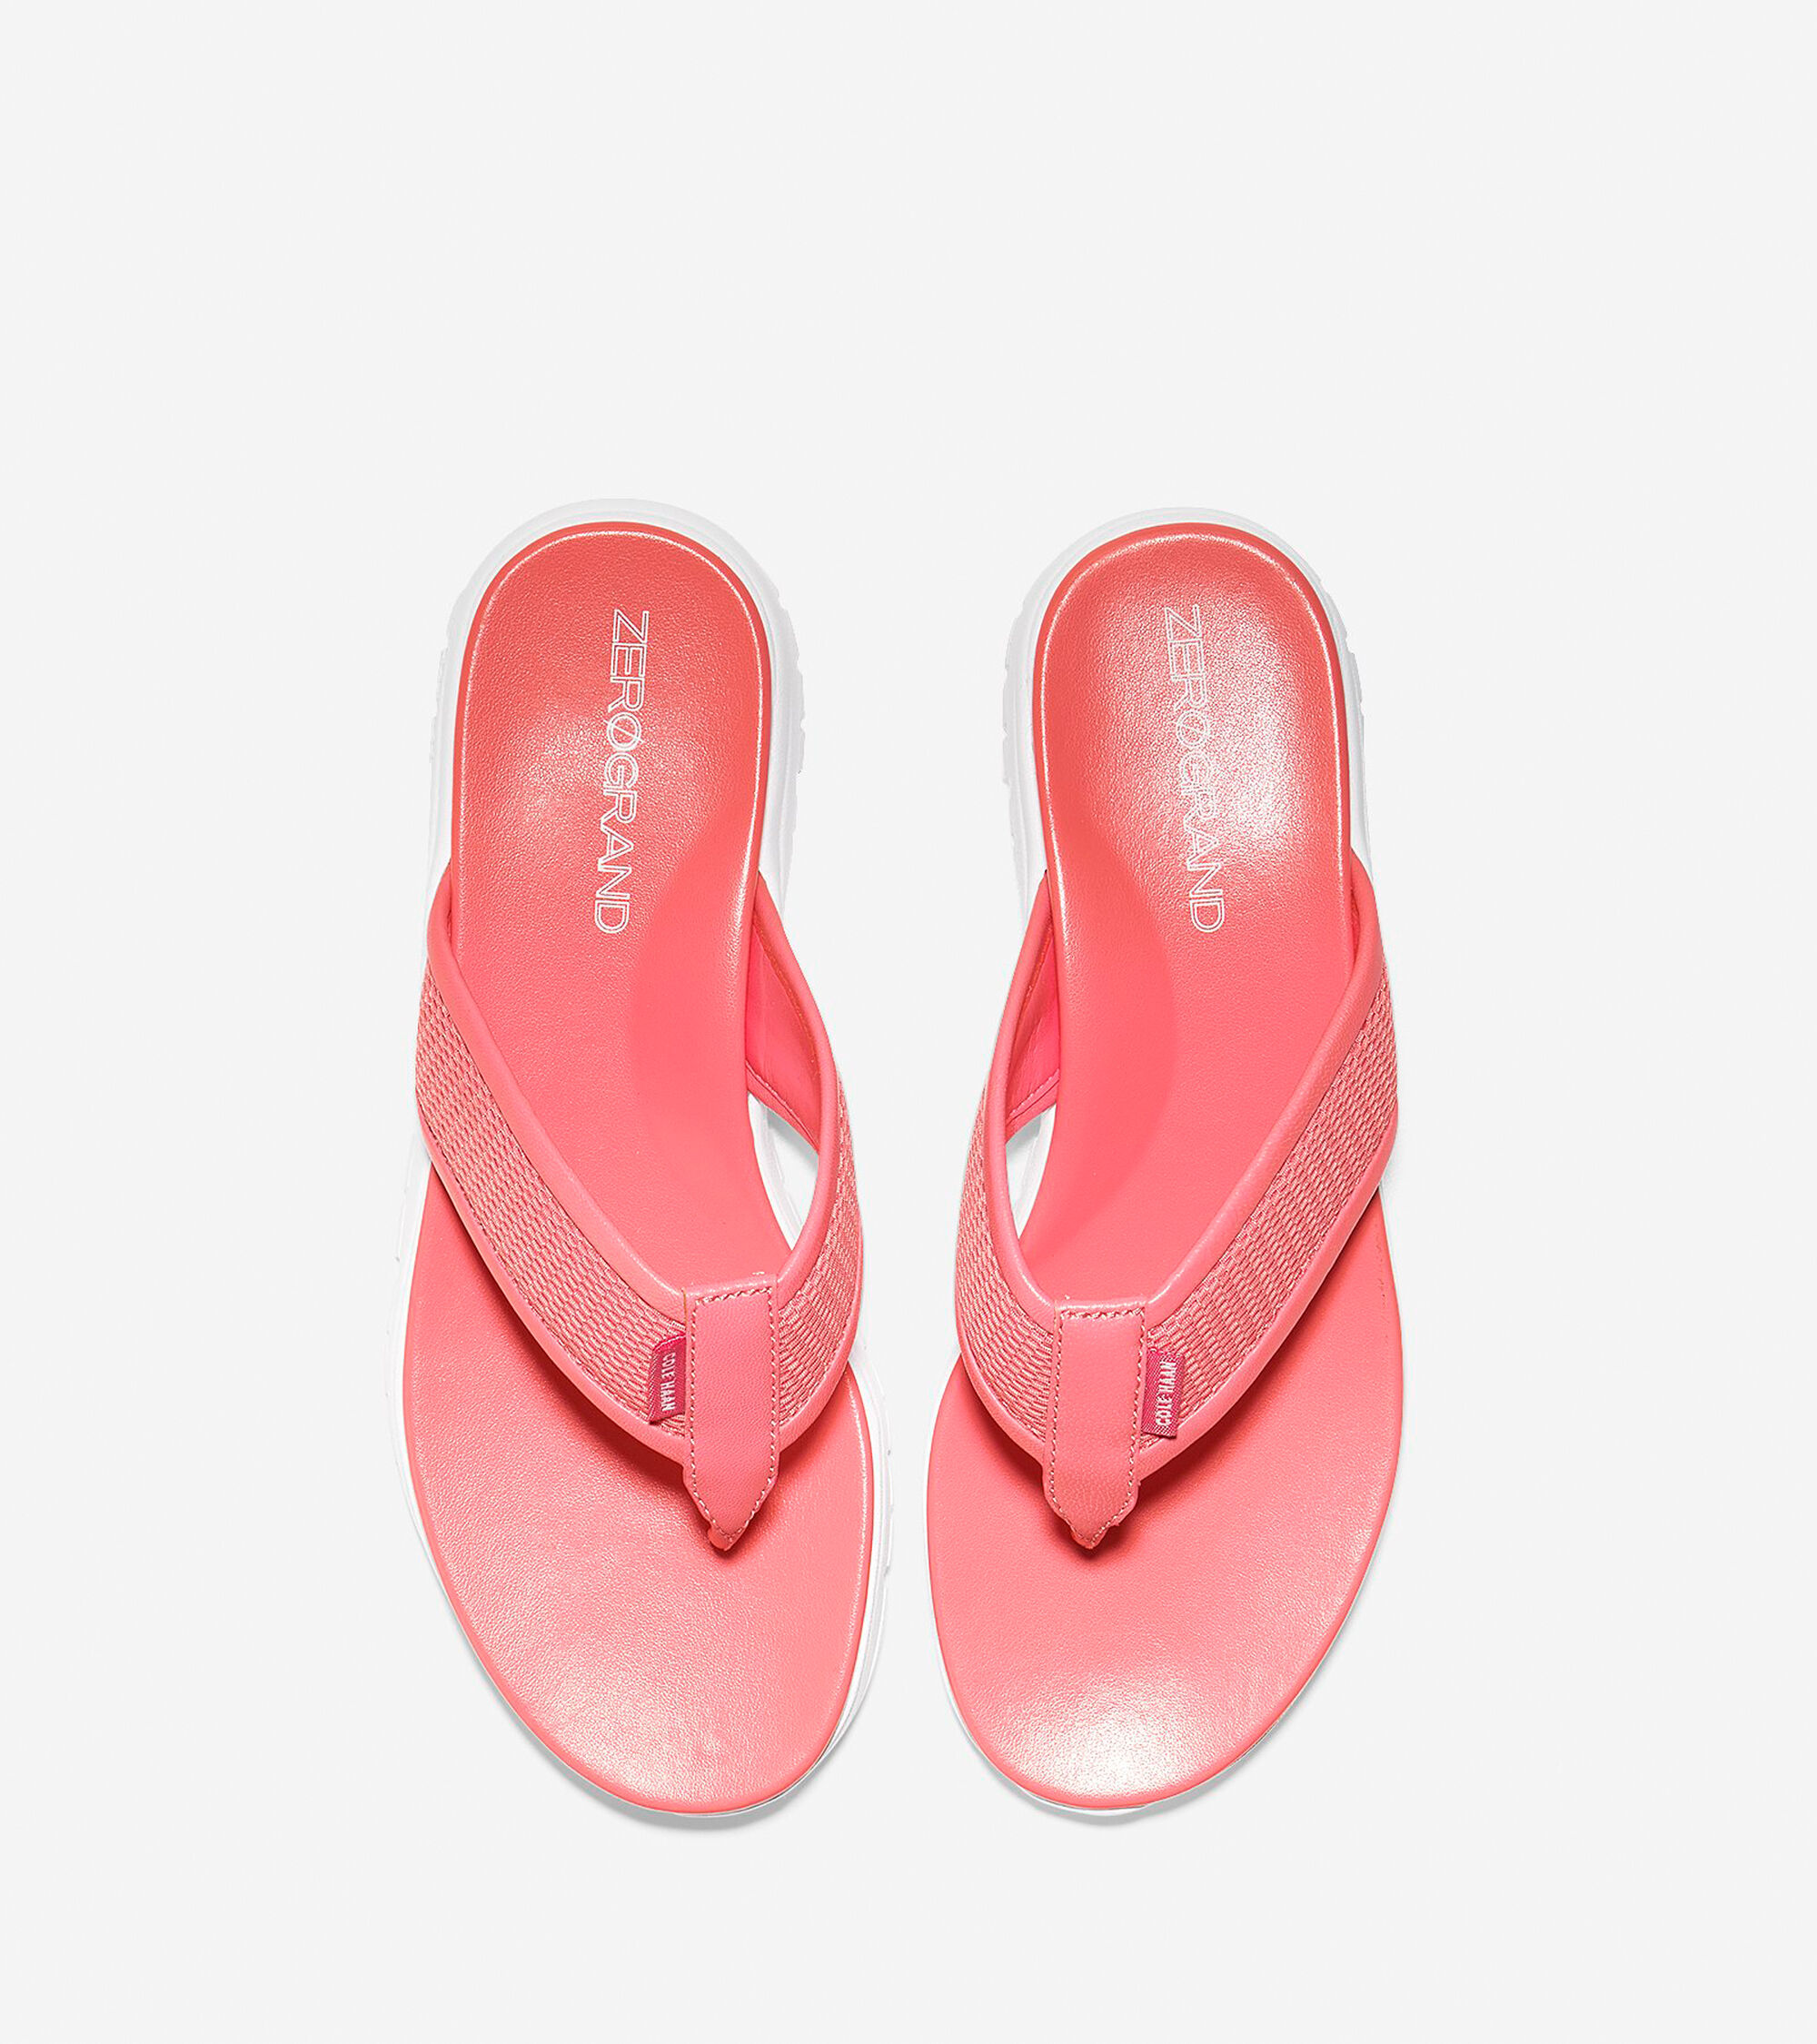 dfd3c1495131 ZEROGRAND Thong Sandals in Coral-Optic White